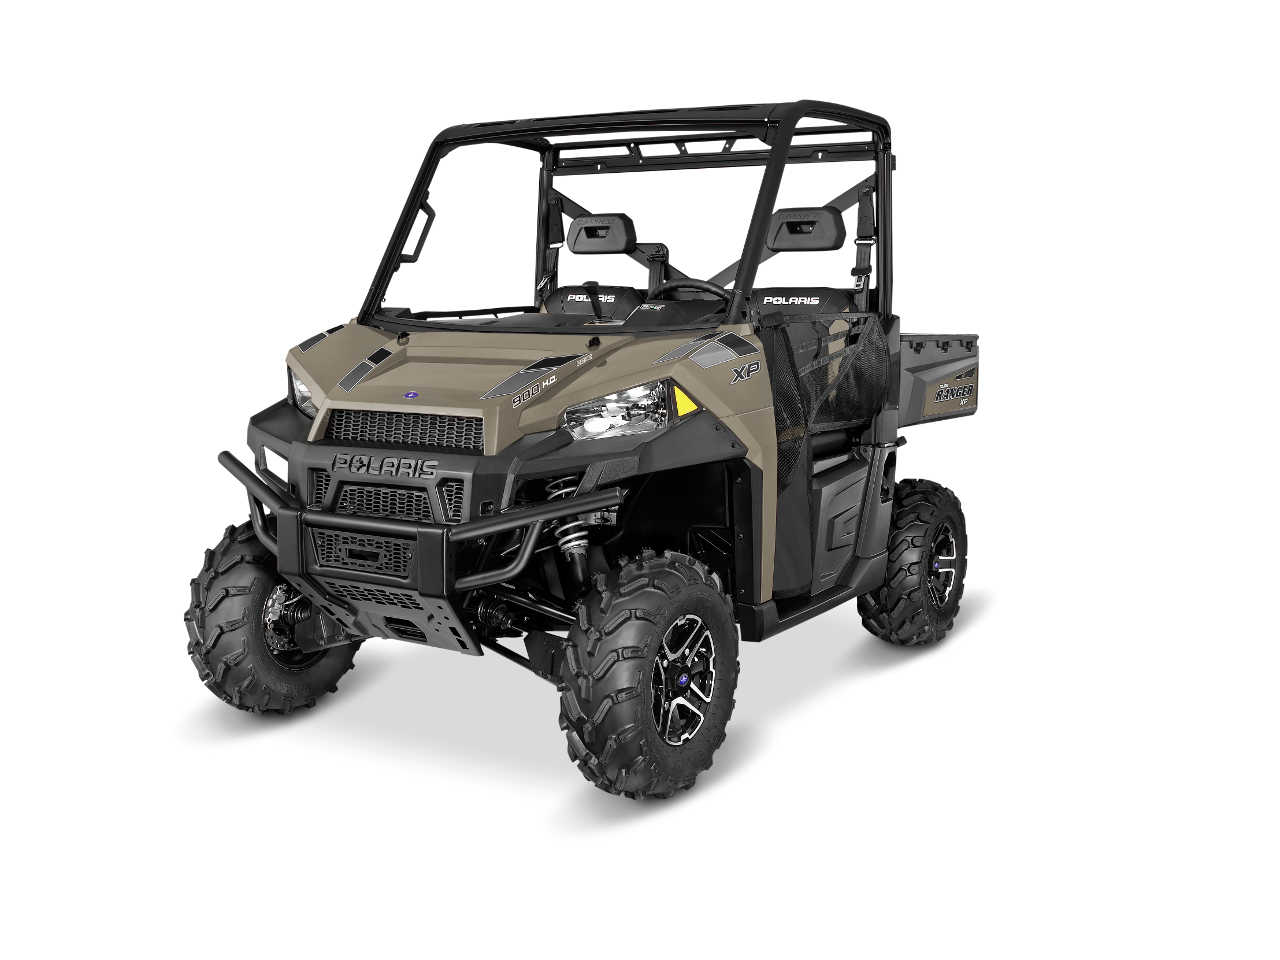 2015 Polaris Atv Utv Lineup on toyota tundra dvd